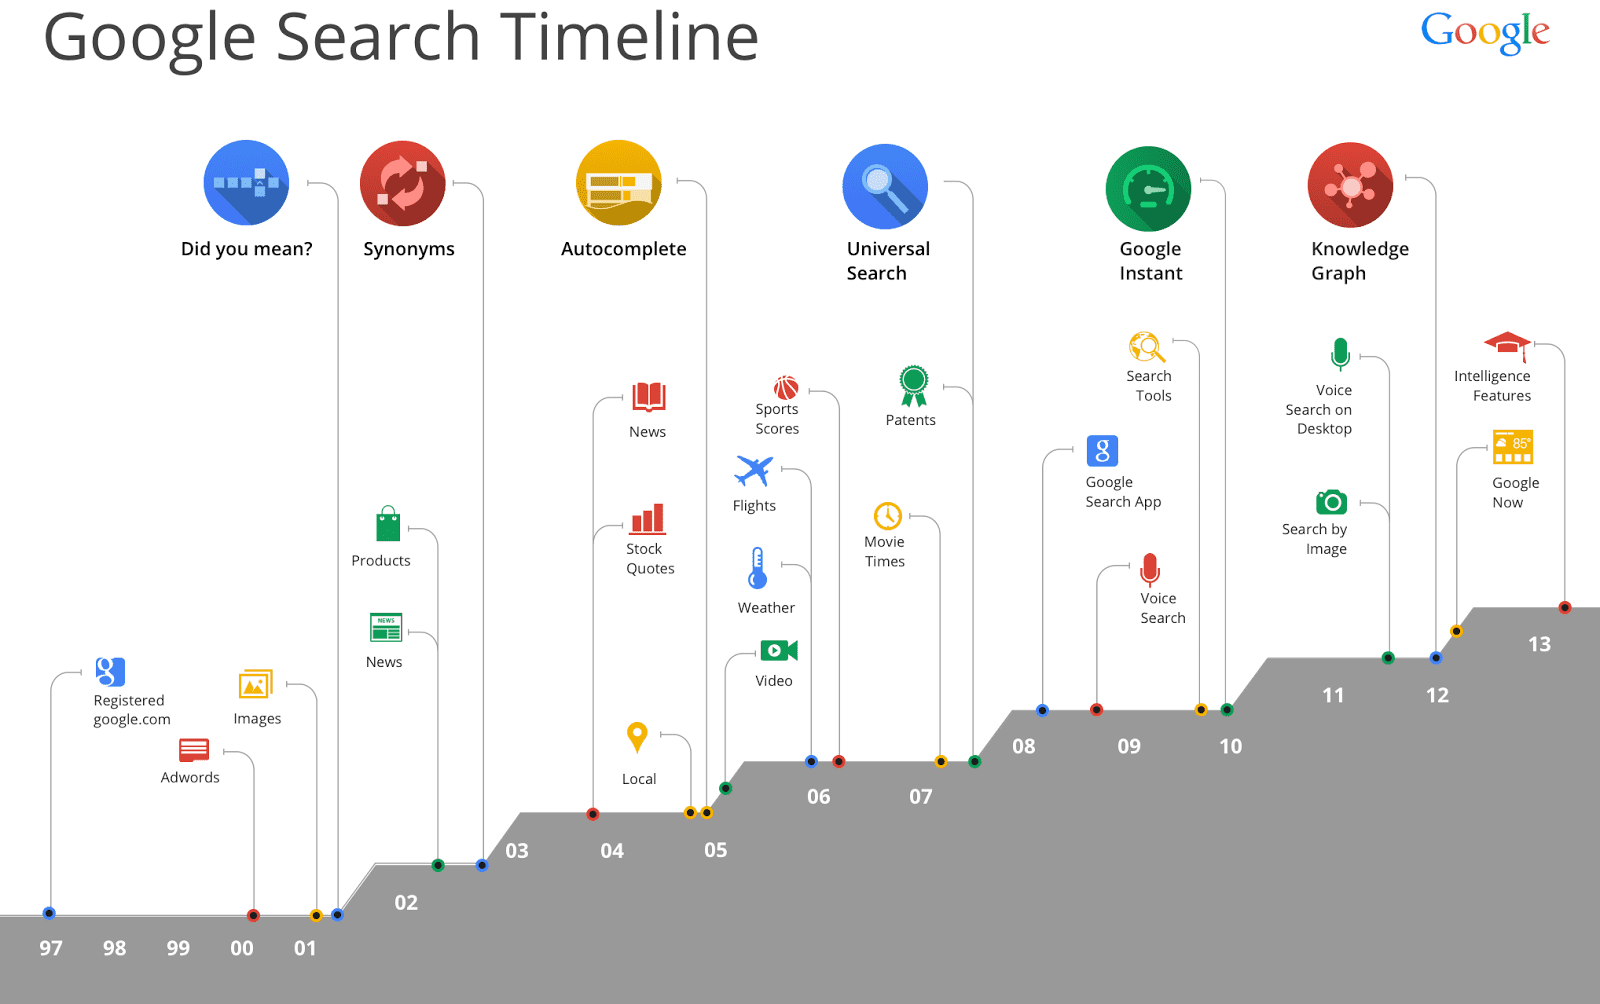 Google-Search-Timeline